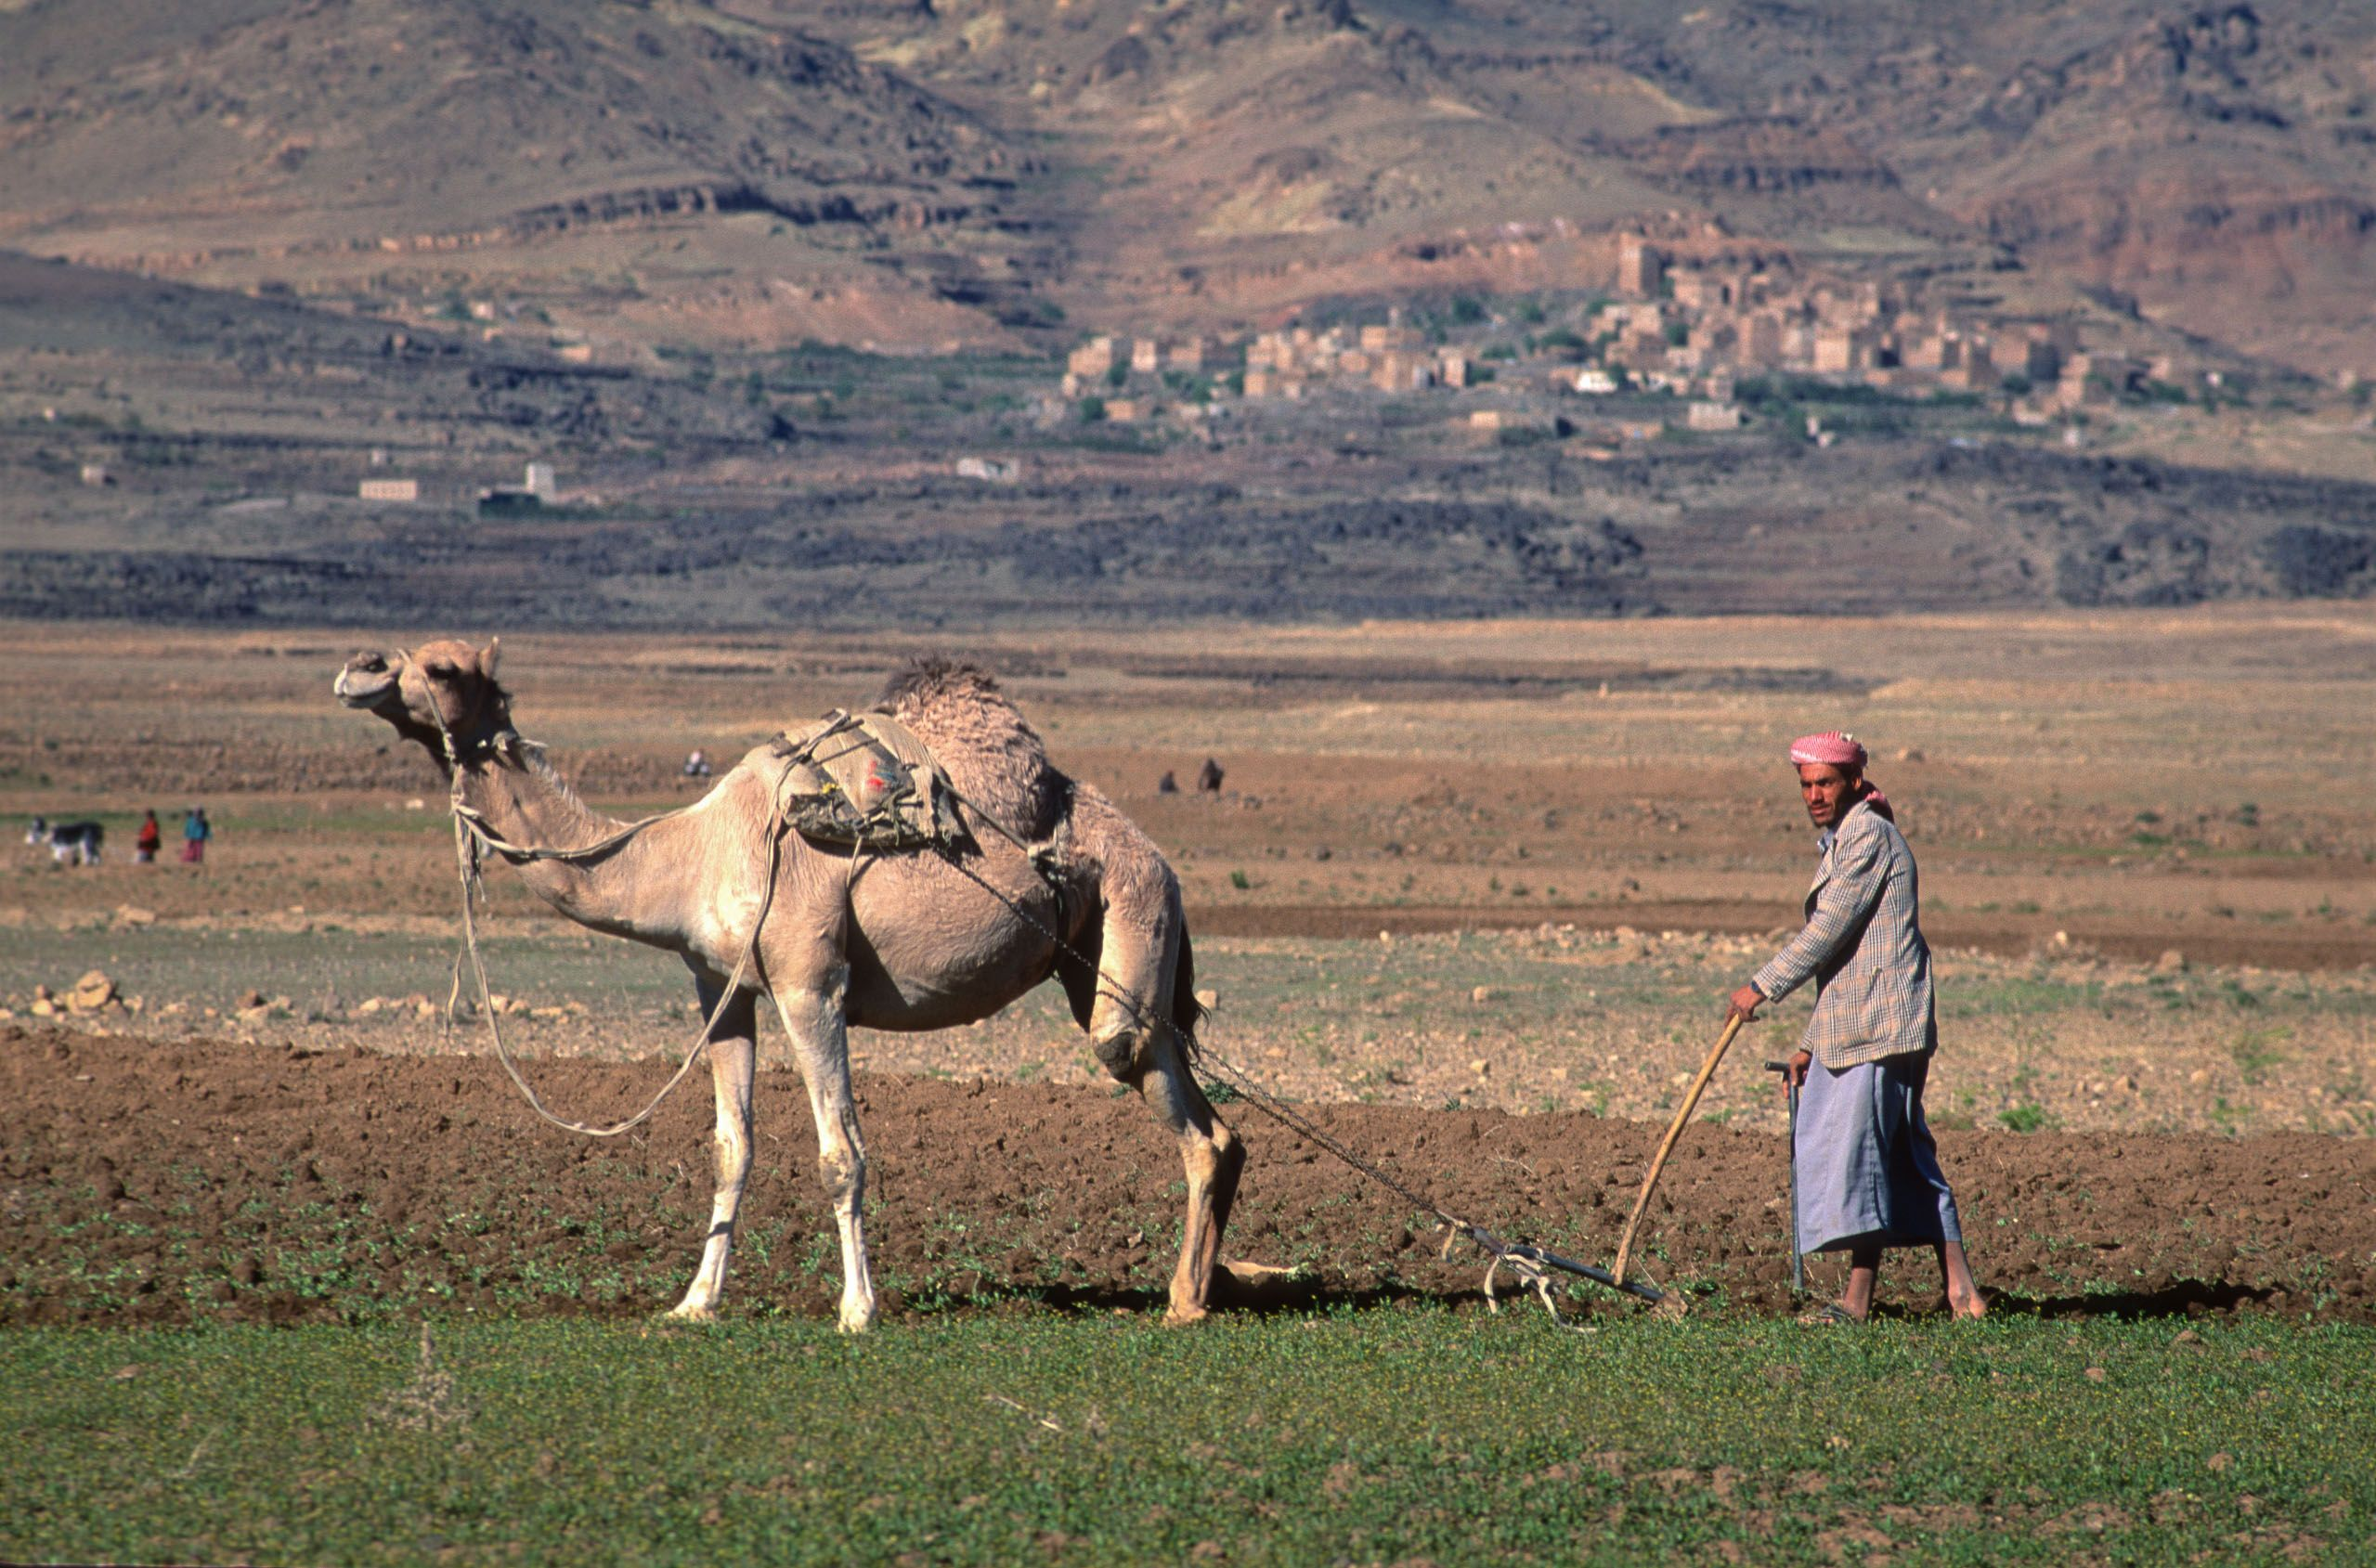 Farmer with Camel. Sana'a, Yemen